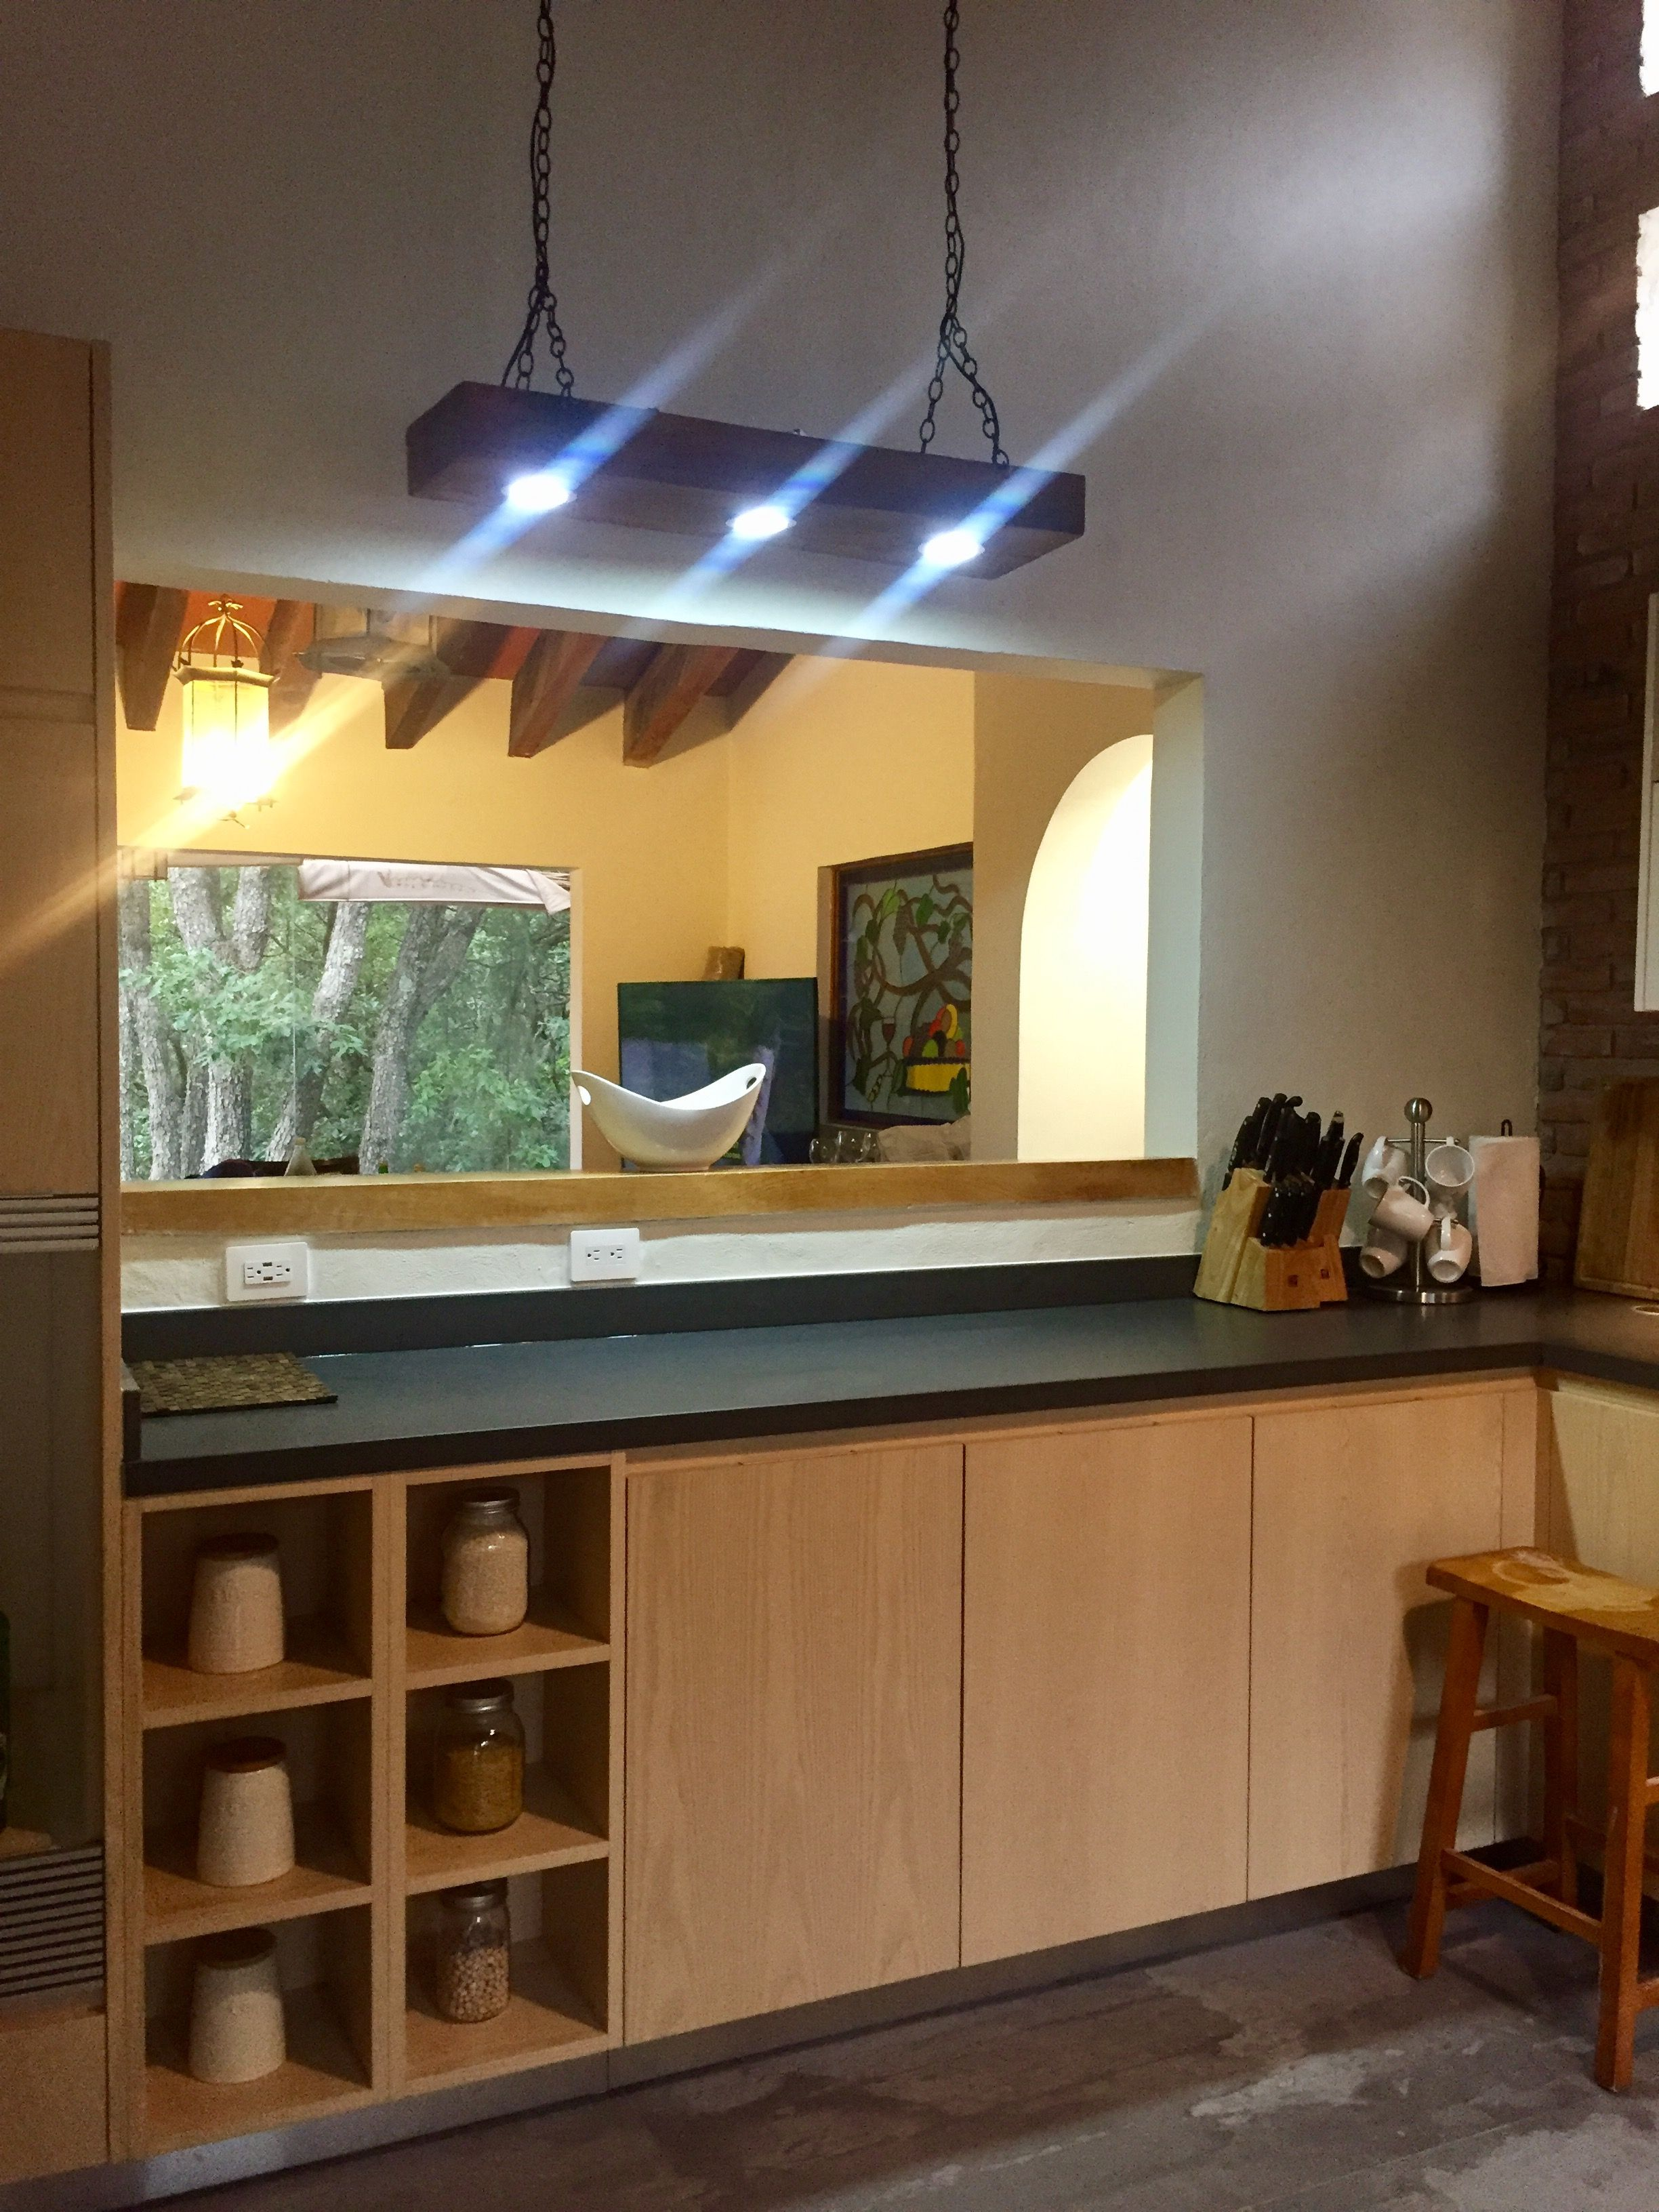 Pin by maria wilde on kitchen pwus remodel pinterest